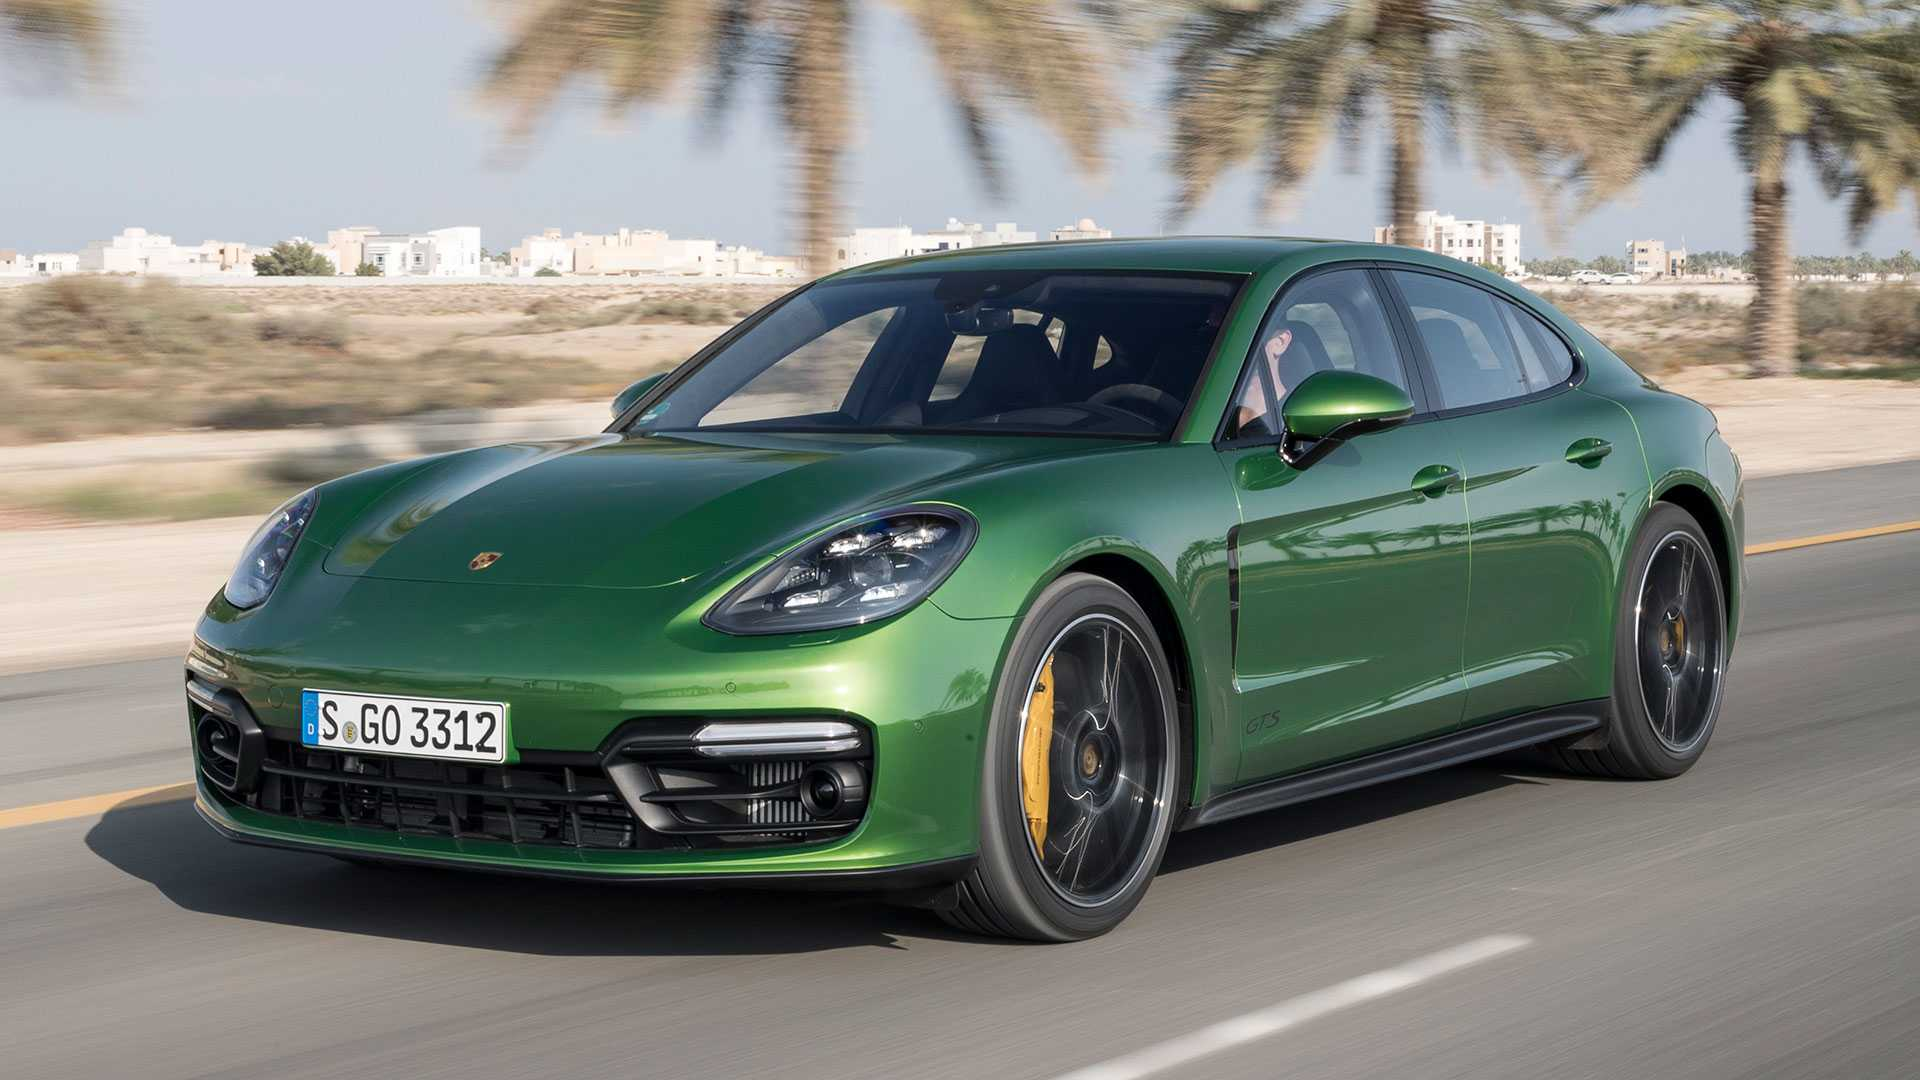 33 The Best 2019 Porsche Panamera Turbo Style